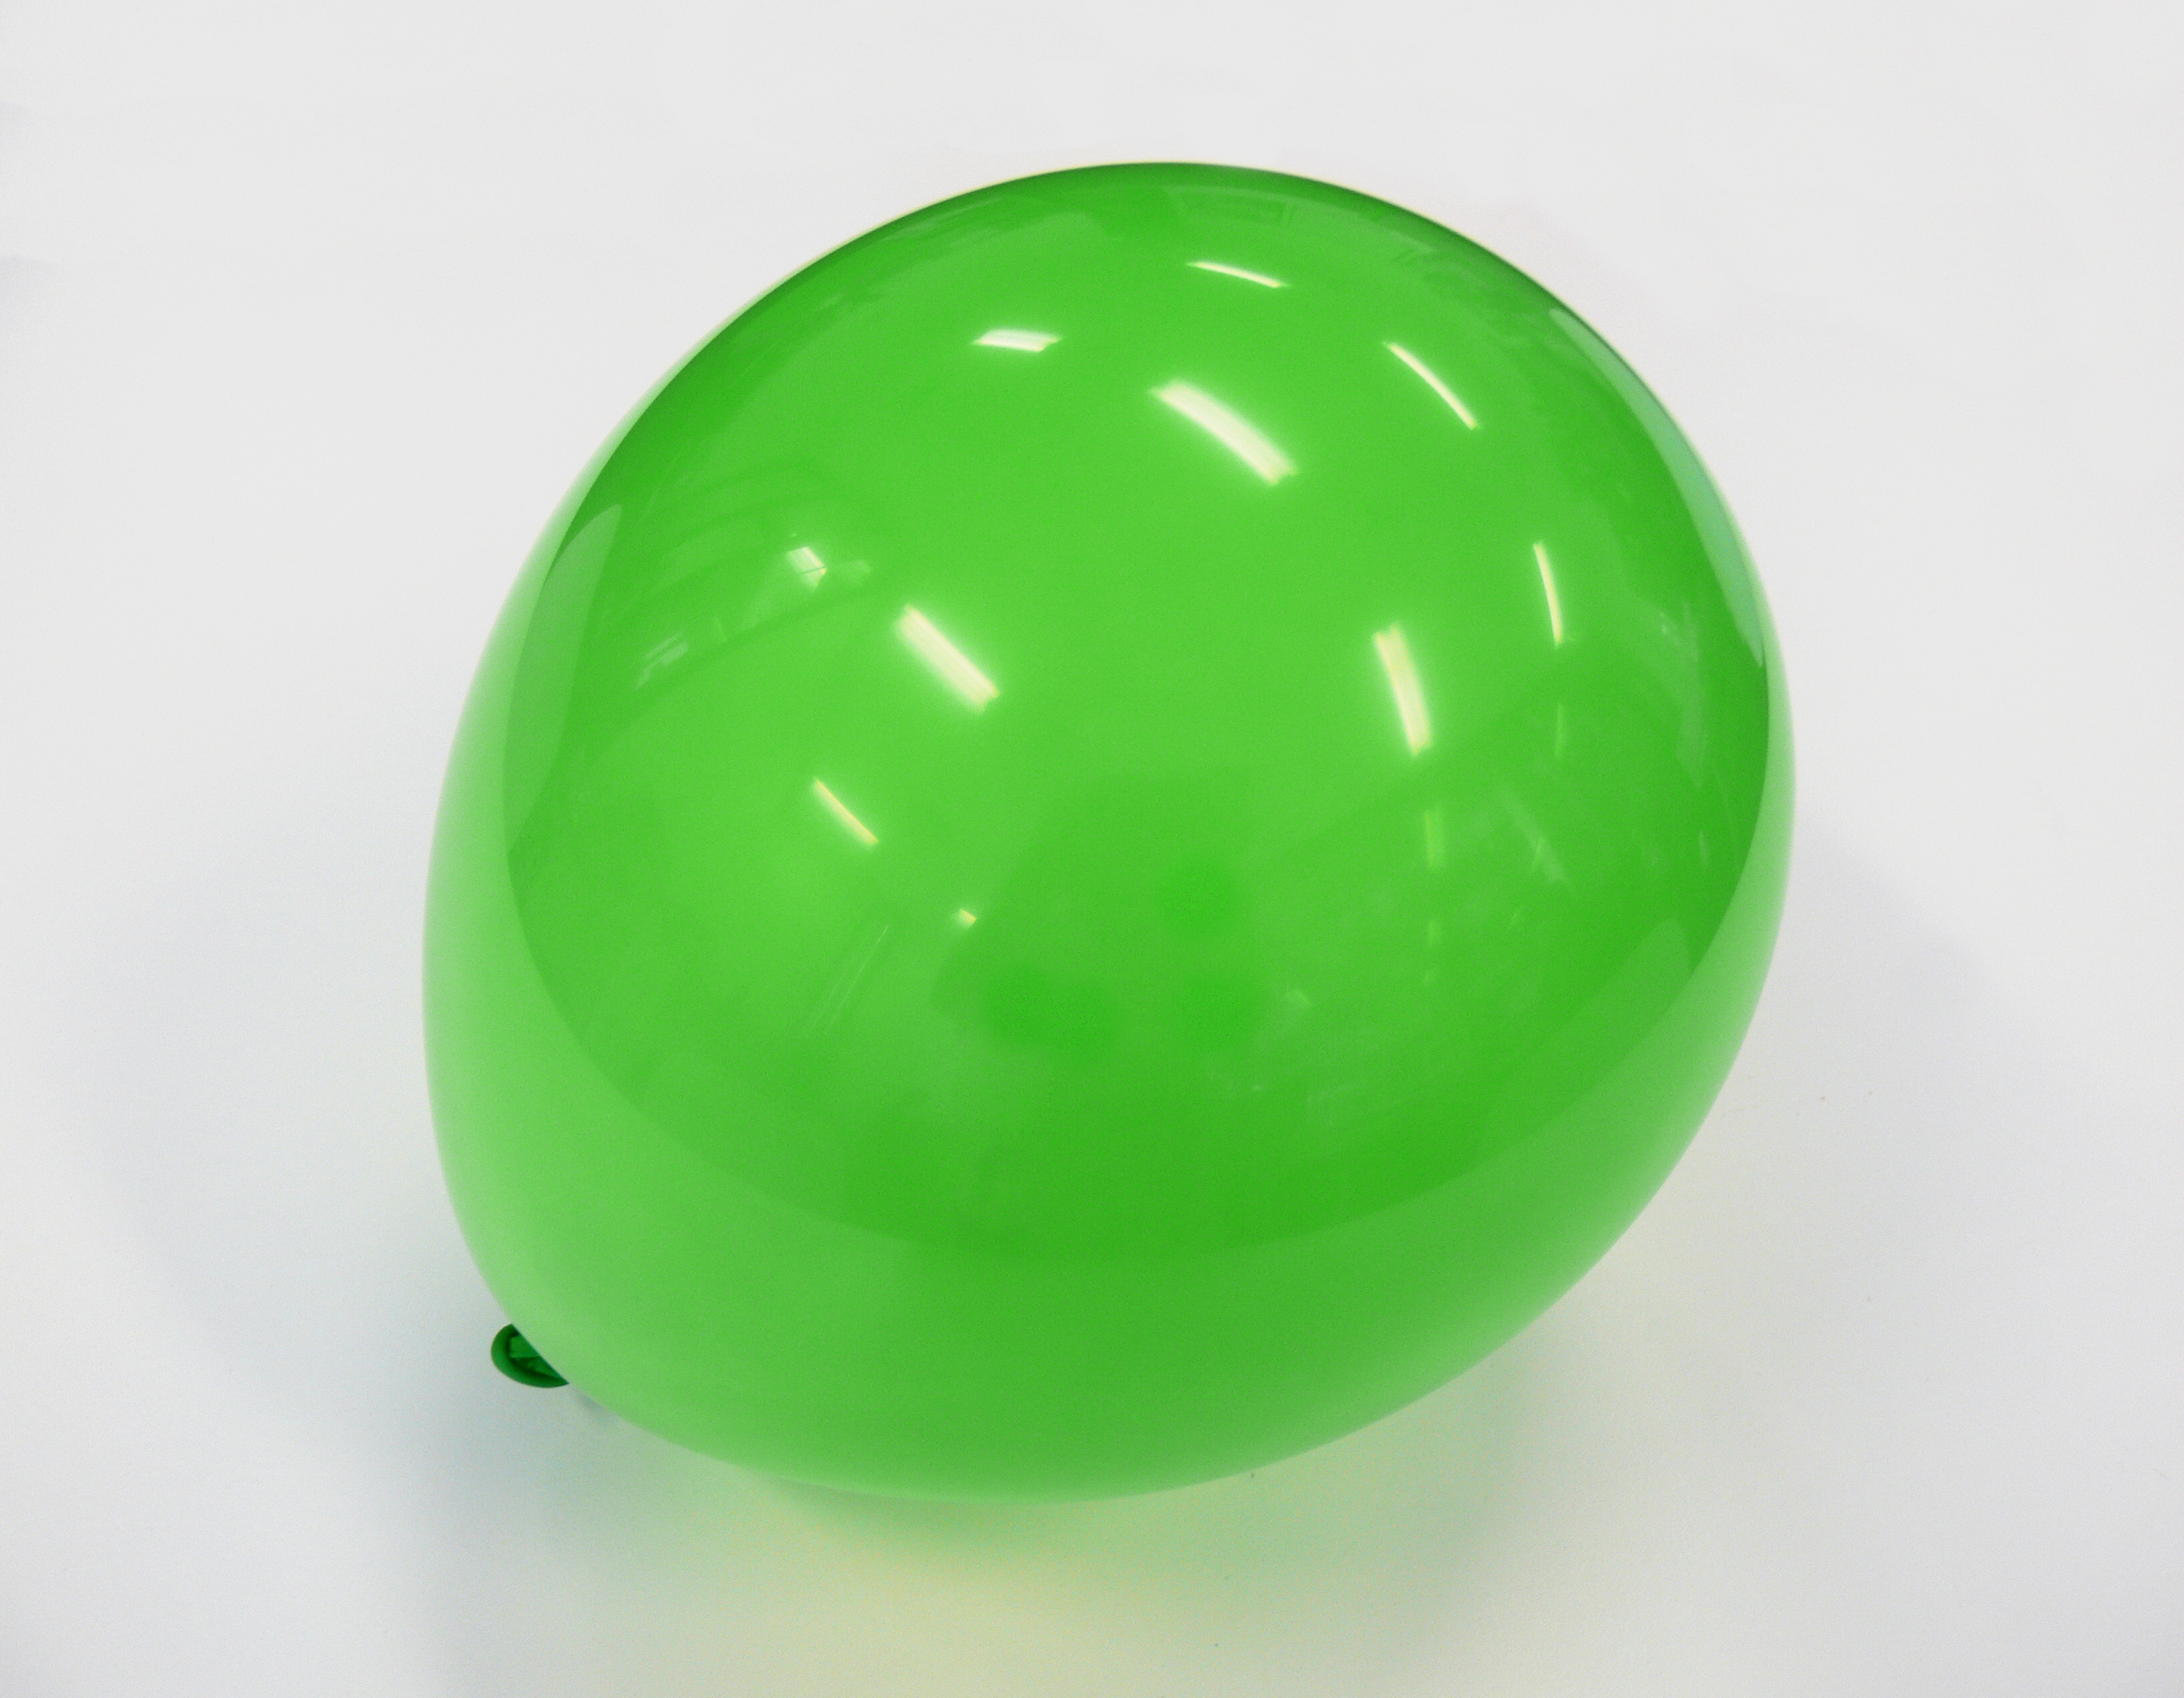 inflated green balloon